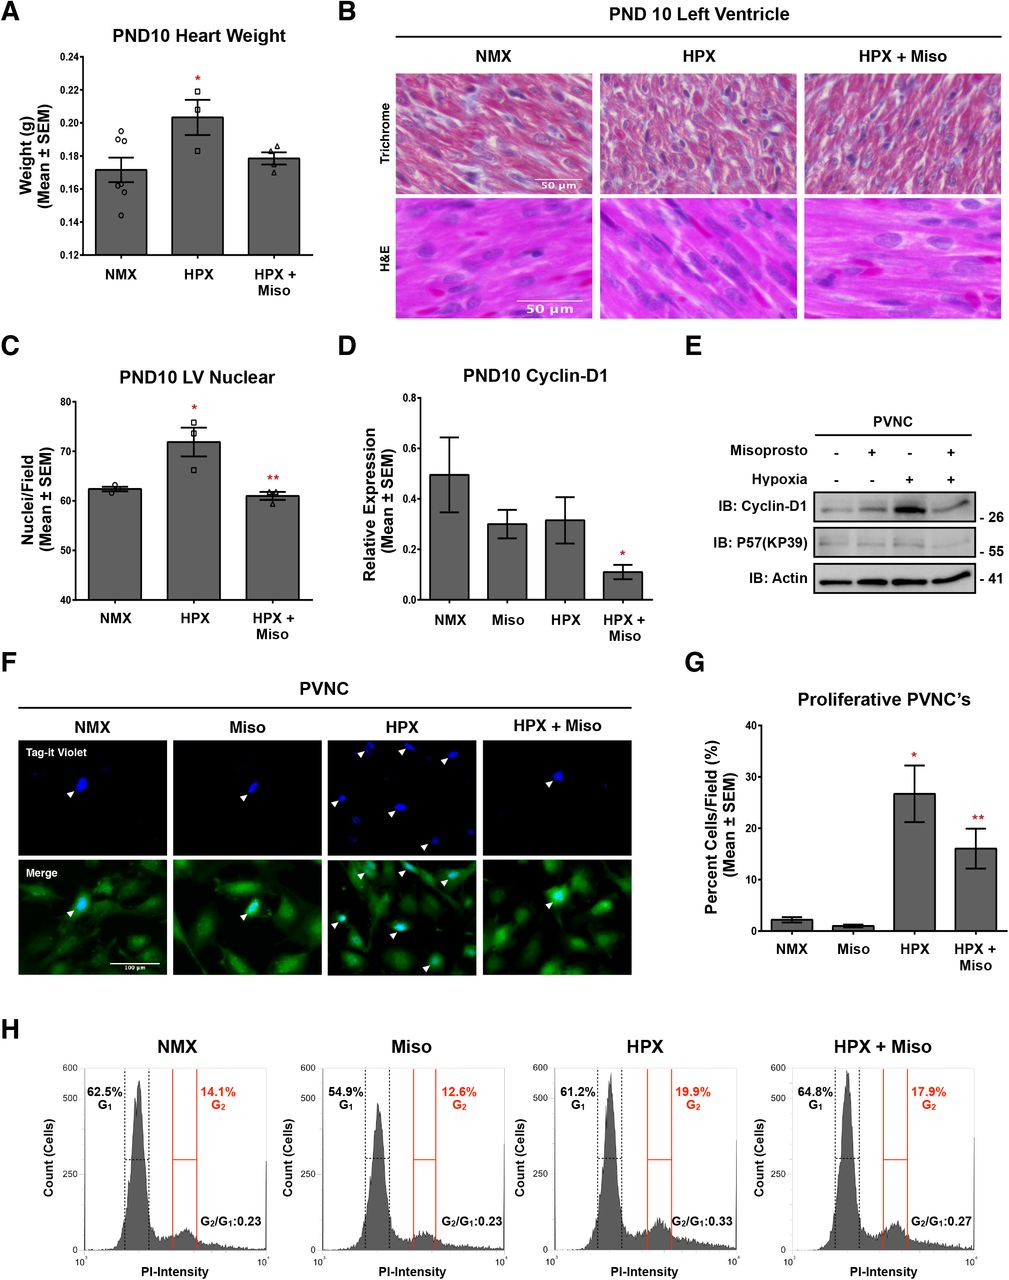 Misoprostol opposes hypoxia-induced neonatal cardiomyocyte proliferation. (A) Immunoblot for Cyclin-D1 and p57(KP39) in protein extracts from primary ventricular neonatal cardiomyocytes (PVNCs) treated with 10 μM misoprostol (Miso) ± 10% O 2 (HPX) for 48 hours. (B) PVNCs treated as in (A) and stained with Tag-it Violet (blue) and calcein-AM (green) and imaged by standard fluorescence microscopy. (C) Quantification of Tag-it Violet positive cells in (B), where the number of blue cells is represented as a percentage (%) of the total number of (green) cells in 10 random fields. (D) Representative DNA Histograms of H9c2 cells treated as in (B), where G 1 indicates cells that are 2N and G 2 indicates cells that are 4N and G 2 /G 1 ratio indicates the proliferative index. (E) Quantification of cells as in (D), comparing the percentage of cells gated into G 2 vs. G 1 across 6 independent experiments. (F) PVNCs treated as in (B) and stained with calcein-AM (green) and imaged by standard fluorescence microscopy. (G) Quantification of cells in (F), where cell surface area was calculated for > 80 cells/condition in 10 random fields. (H) H9c2's treated as in (A). 2 mM 2-Deoxy-D-glucose (2DG) was added to half of the conditions for 48 hours in order to inhibit glycolysis. Cells were stained with Tag-it Violet (blue) and calcein-AM (green) and imaged by standard fluorescence microscopy. (I) Quantification as in (C) of Tag-it Violet positive cells in (H) for 10 random fields. (J) Quantification of Tag-it Violet positive H9c2 cells treated as in (A), where 100 μM Etomoxir (ETO) was added to half of the conditions for 48 hours in order to inhibit fatty acid oxidation. The number of blue cells is represented as a percentage (%) of the total number of (green) cells in 10 random fields. All data are represented as mean ± S.E.M. *P